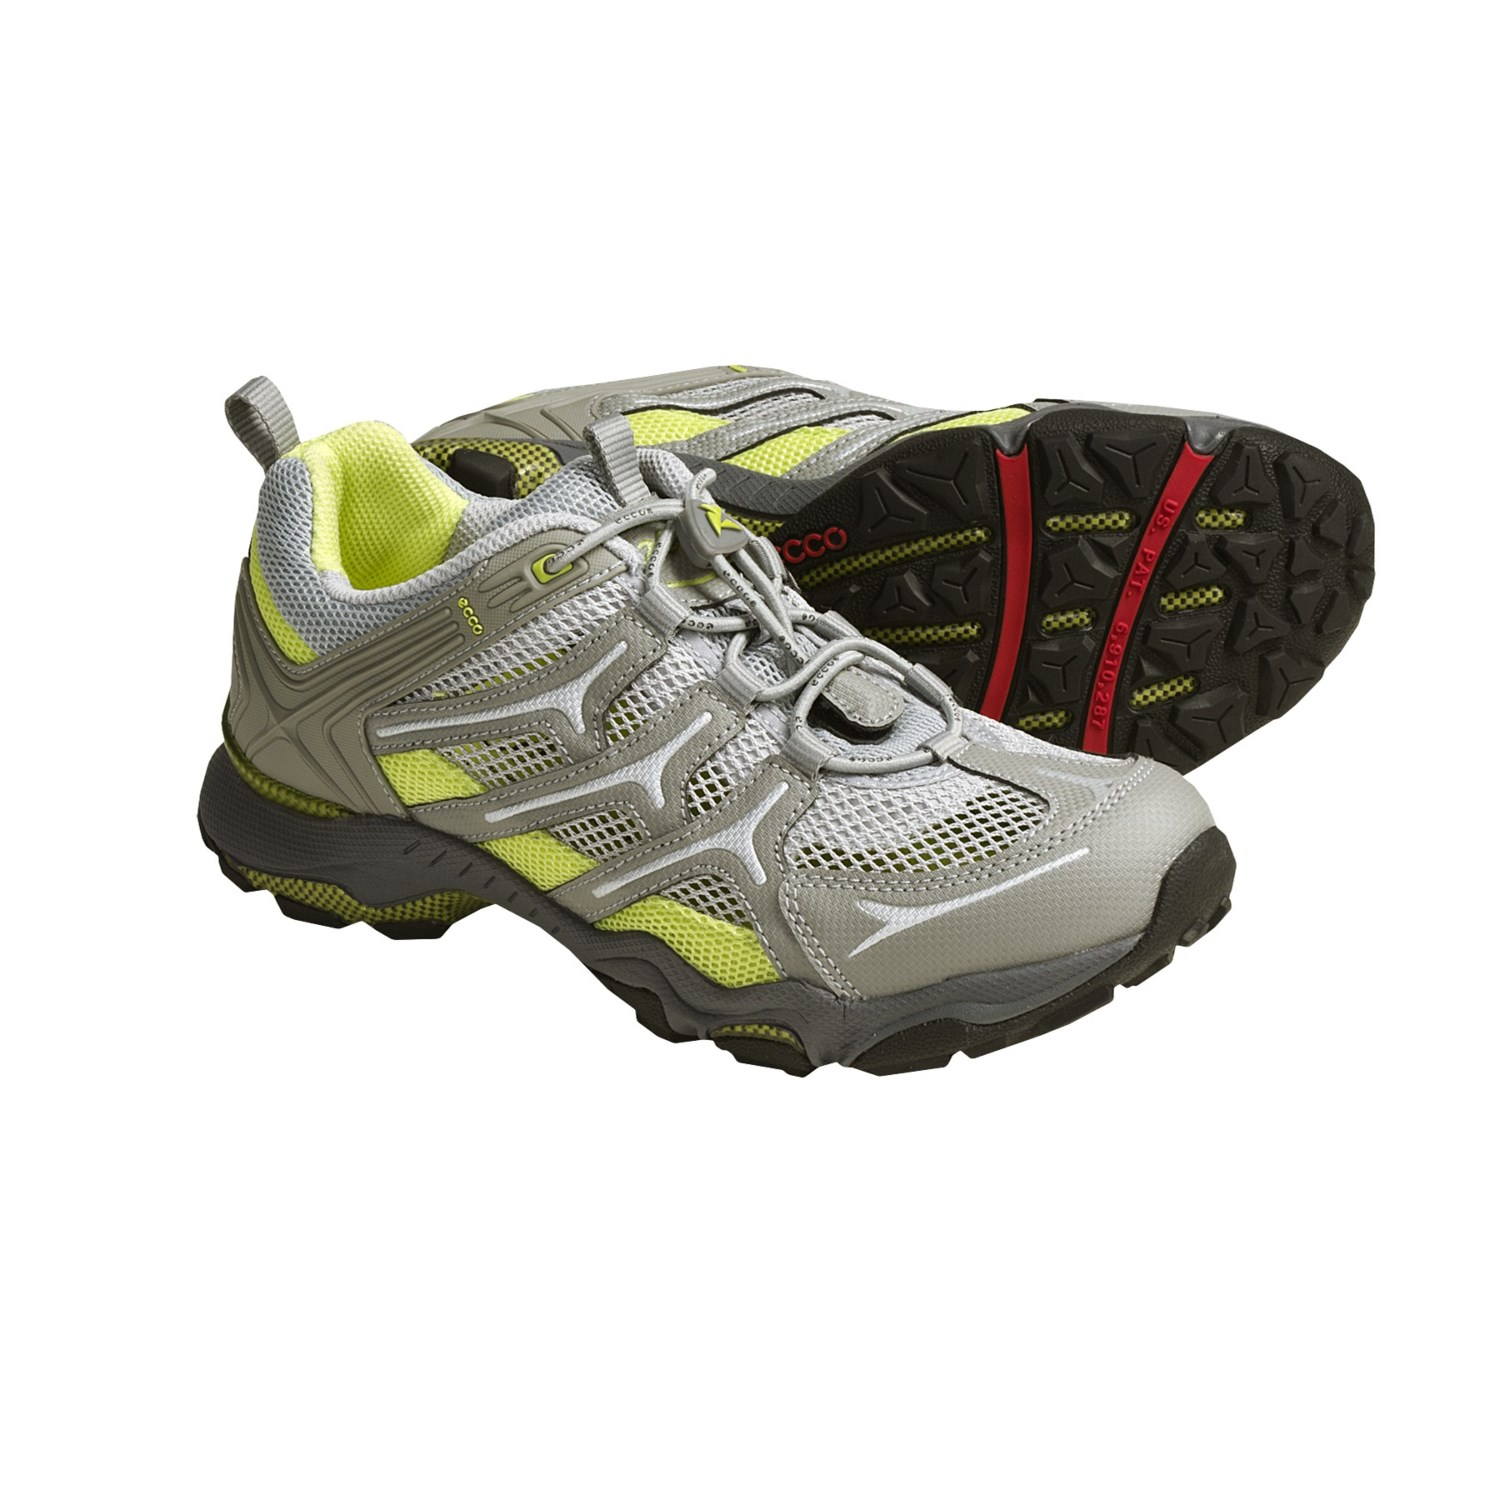 Ecco walking shoes for women Clothes stores